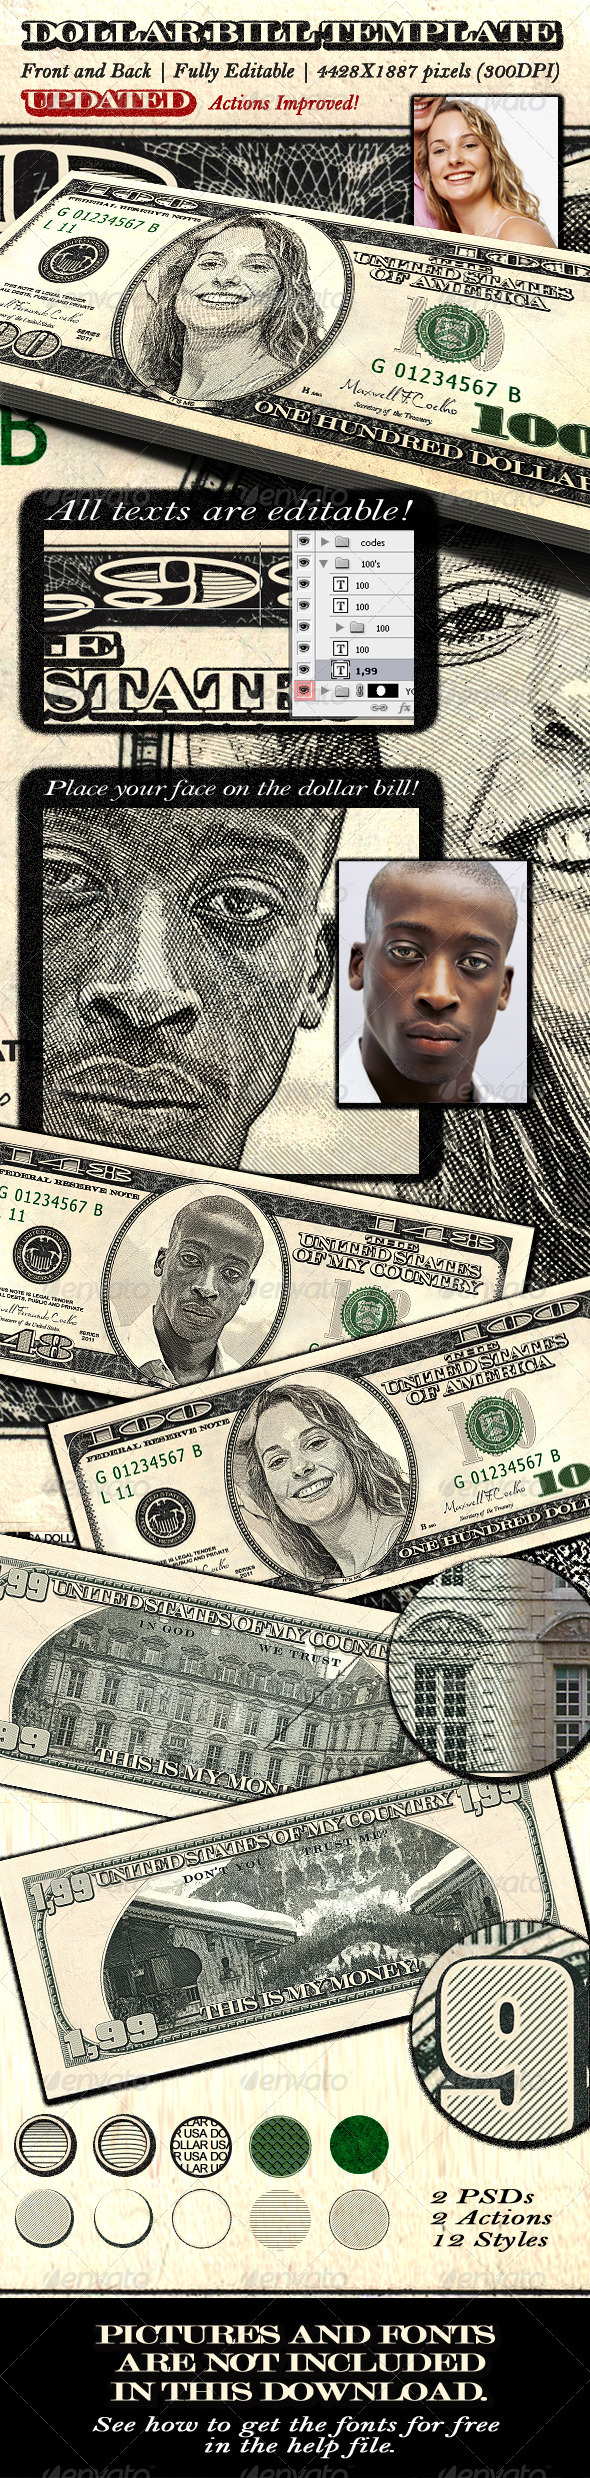 Dollar Bill Template - Front and Back by MaxwellCoelho | GraphicRiver